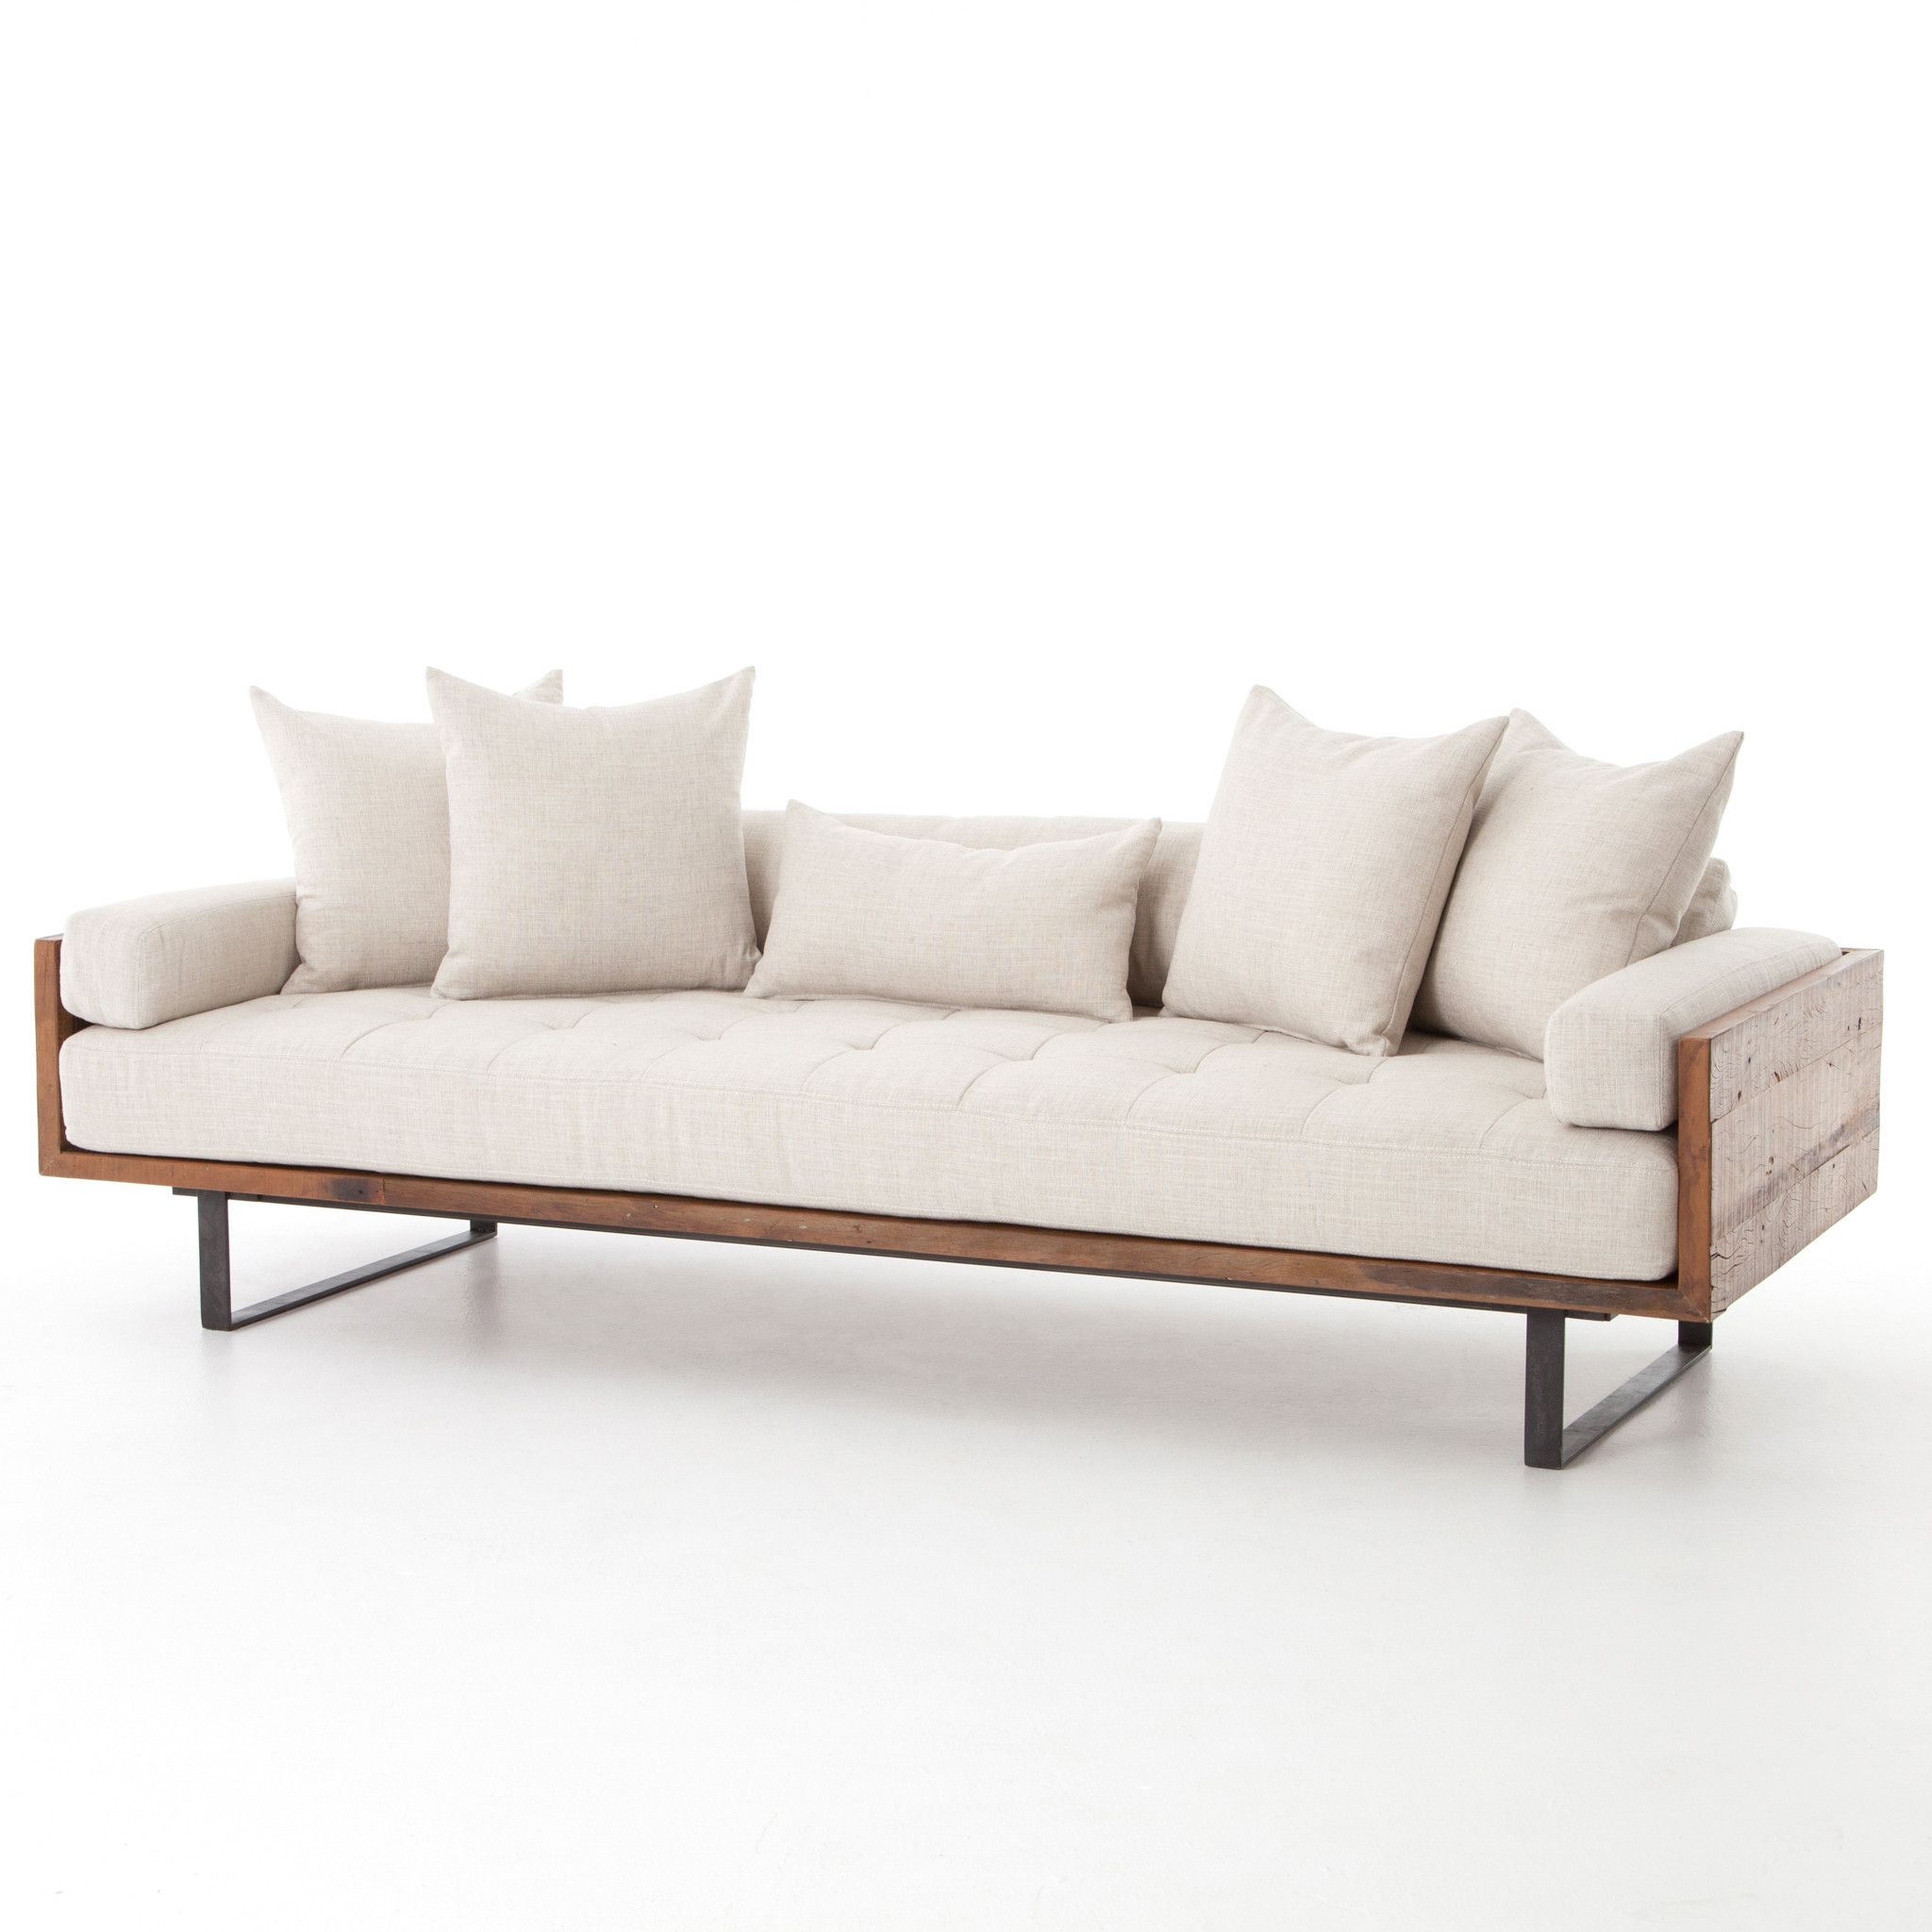 Shop For Ranger Sofa At France Amp Son For The Best Deals Free Shipping On All Orders Over 99 In The Us Rustikaler Dachboden Sofa Selber Bauen Sofa Design